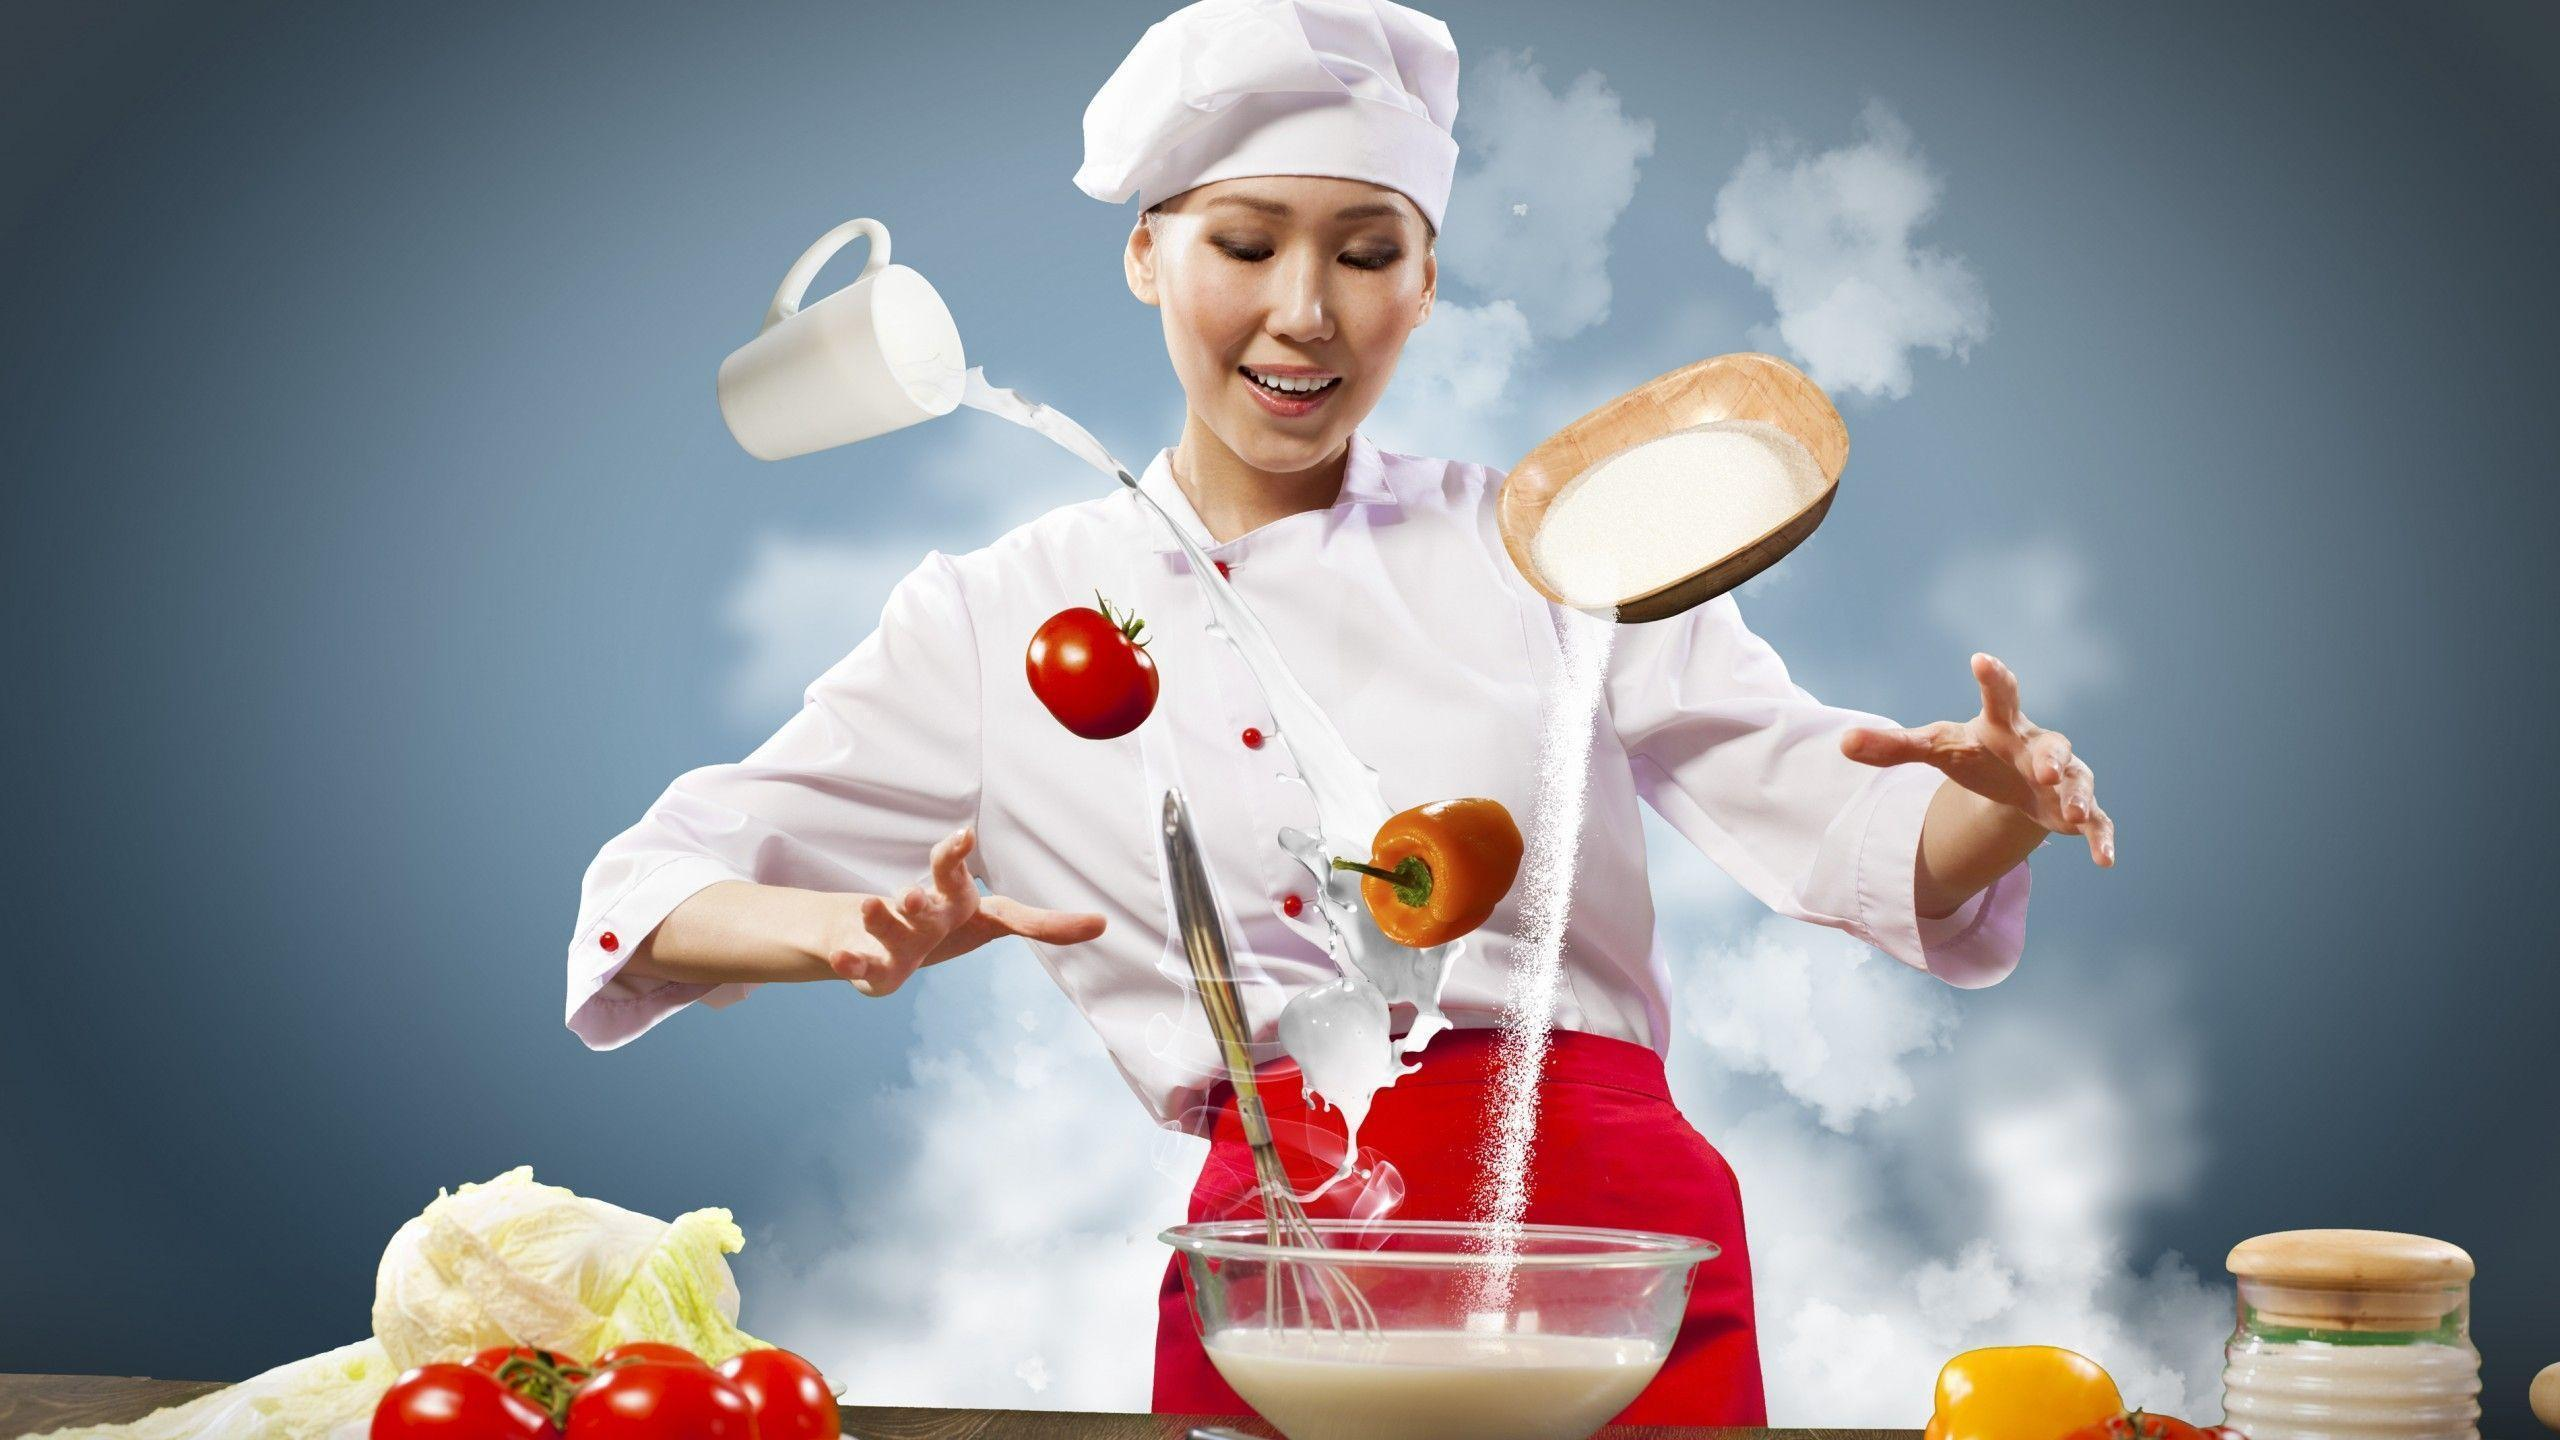 Chef Wallpapers, Top Beautiful Chef Images, 65-High Quality ...